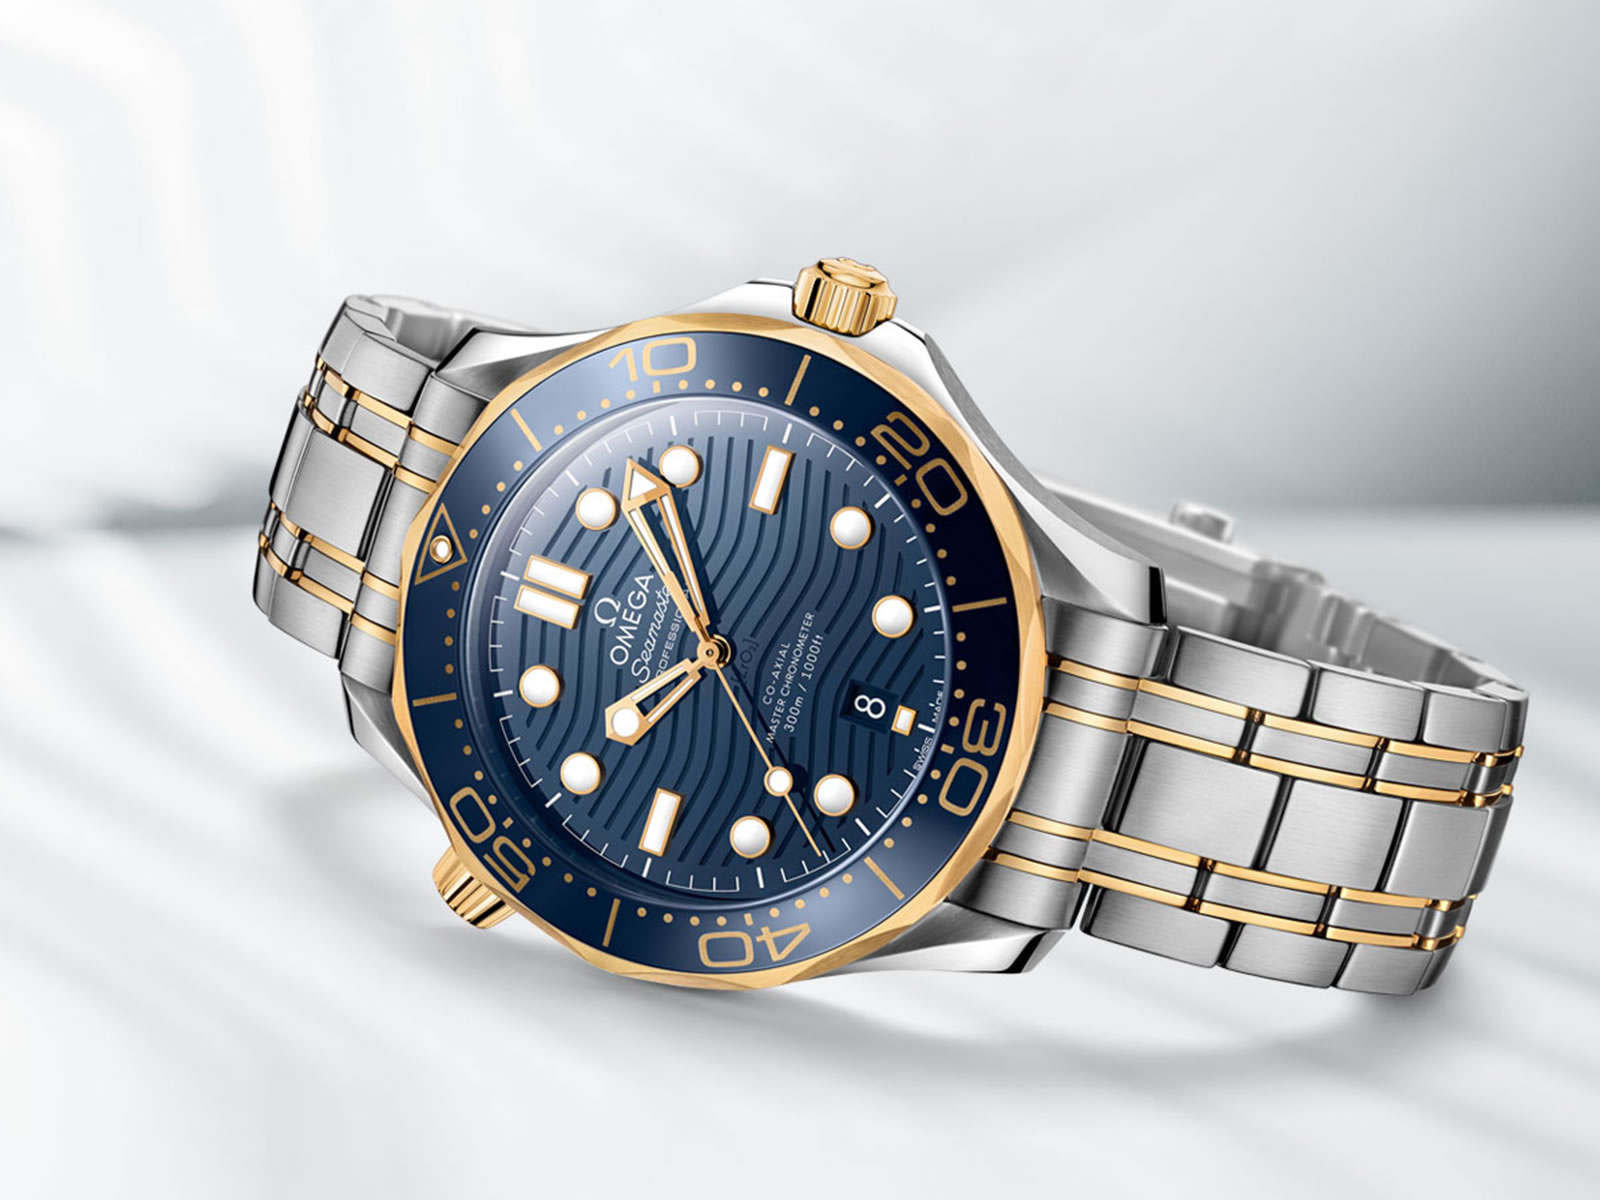 210-20-42-20-03-001-omega-seamaster-diver-300m-collection-3-.jpg